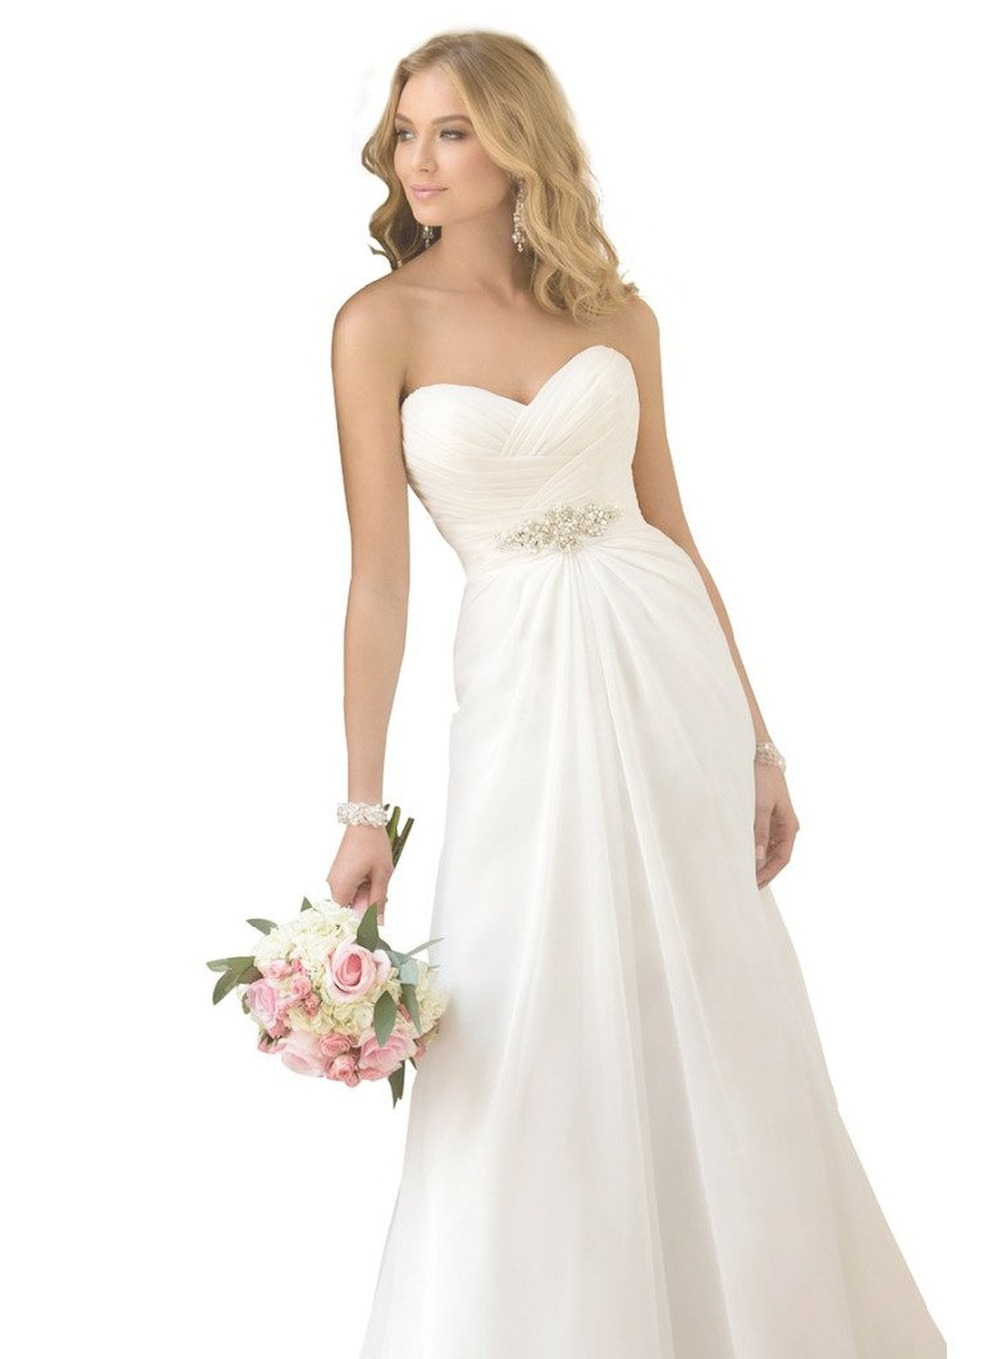 Buy e marry wedding dress 2017 simple for Marry me wedding dresses